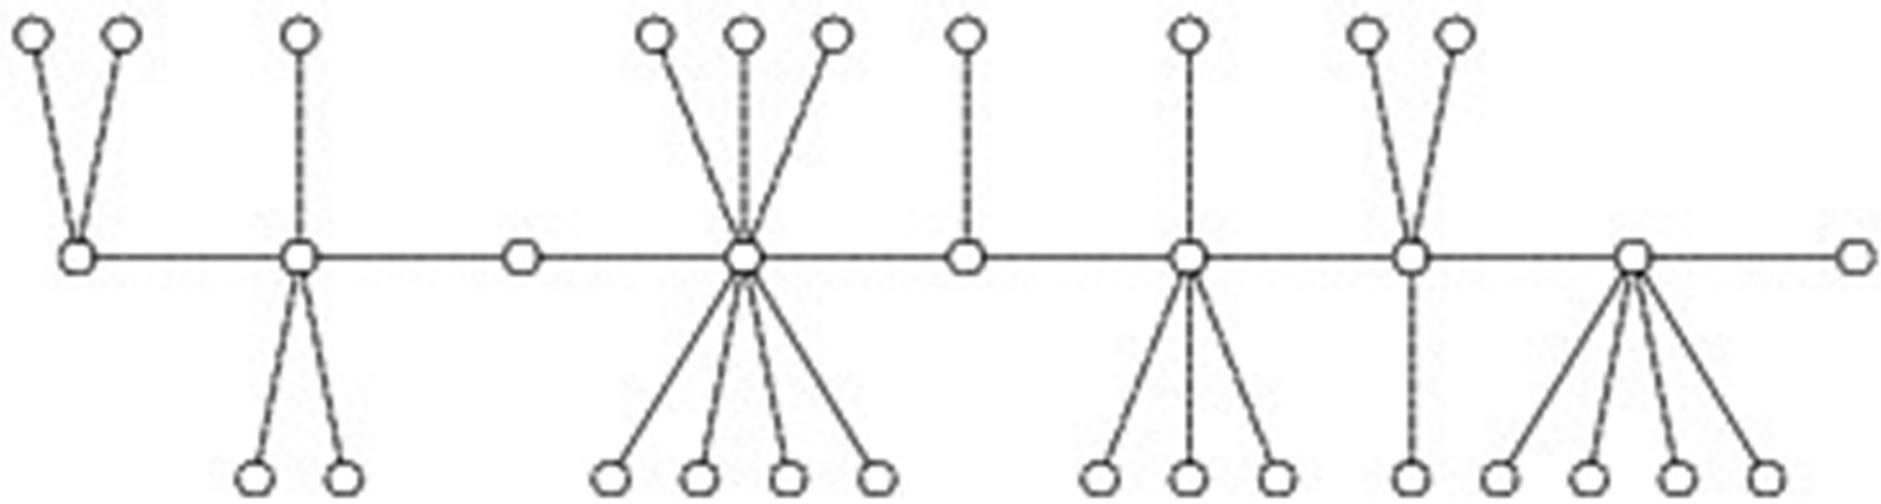 Characterization and construction of permutation graphs a caterpillar with 25 pendant vertices aloadofball Images